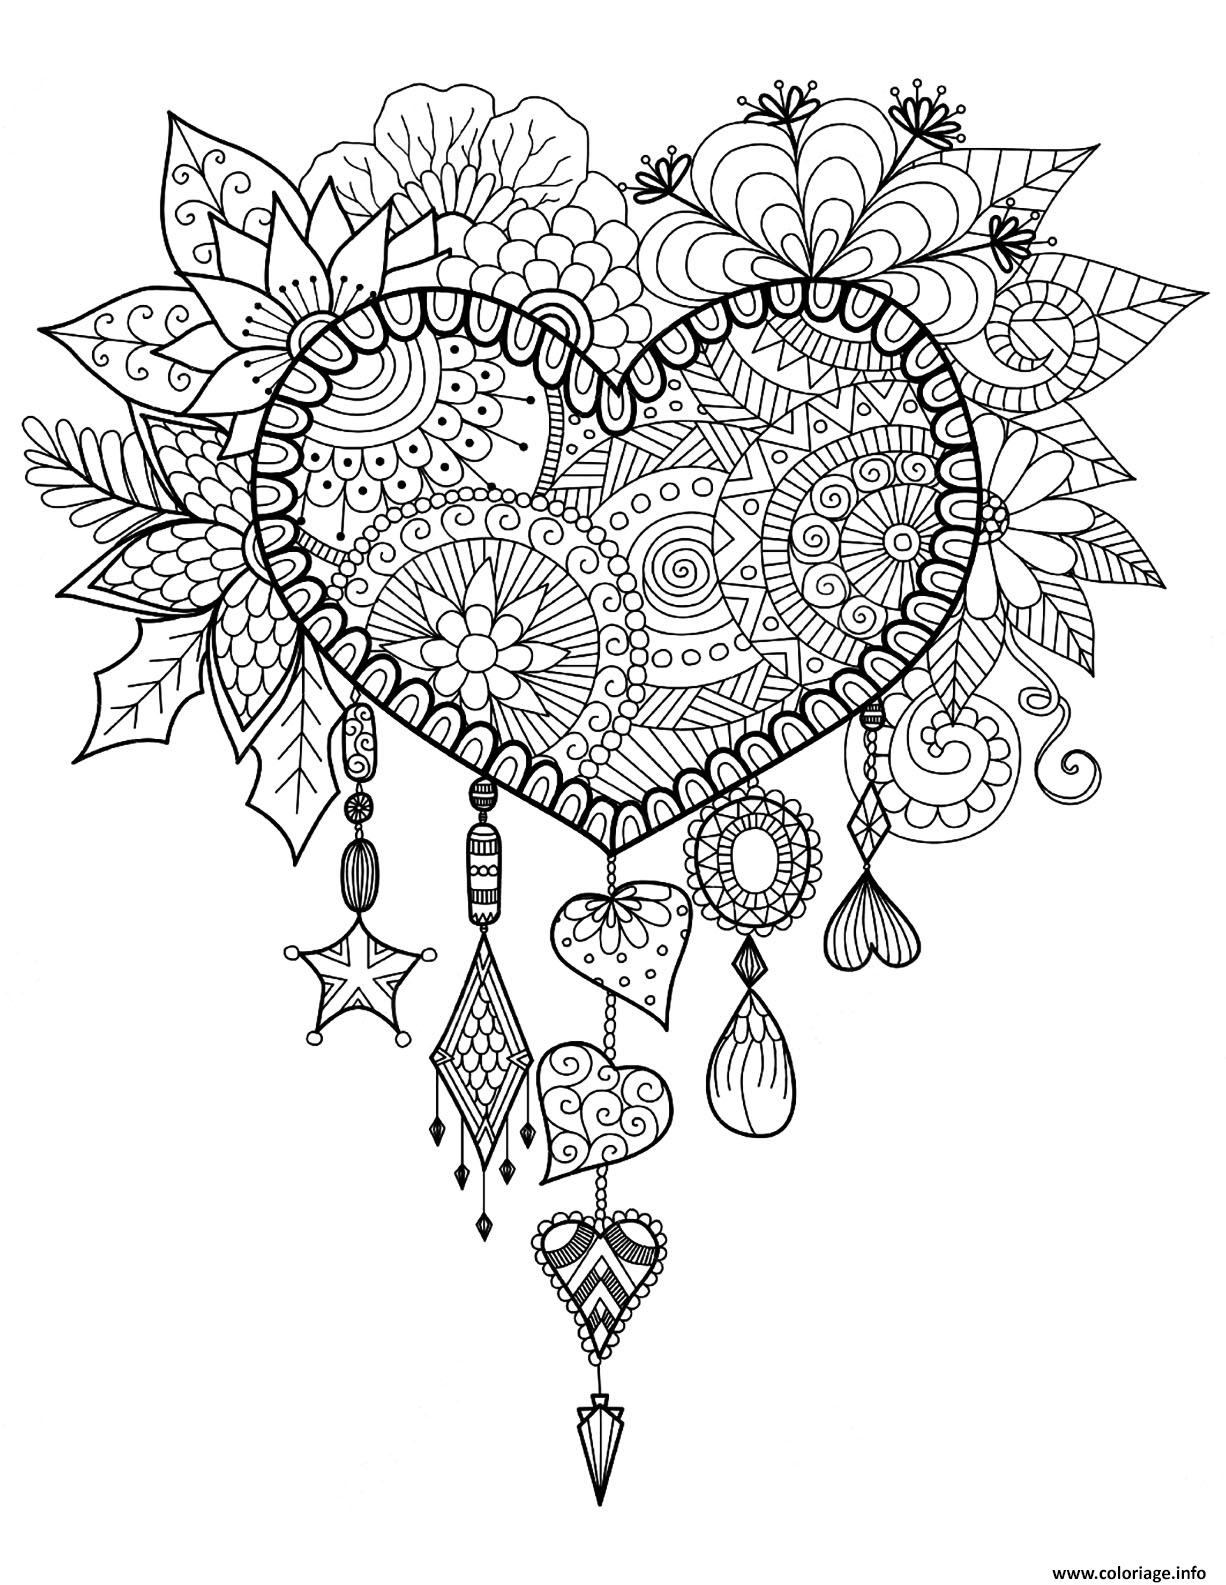 Coloriage Adulte Telecharger.Coloriage Adulte Attrape Reve Coeur Mandala Zen Dessin